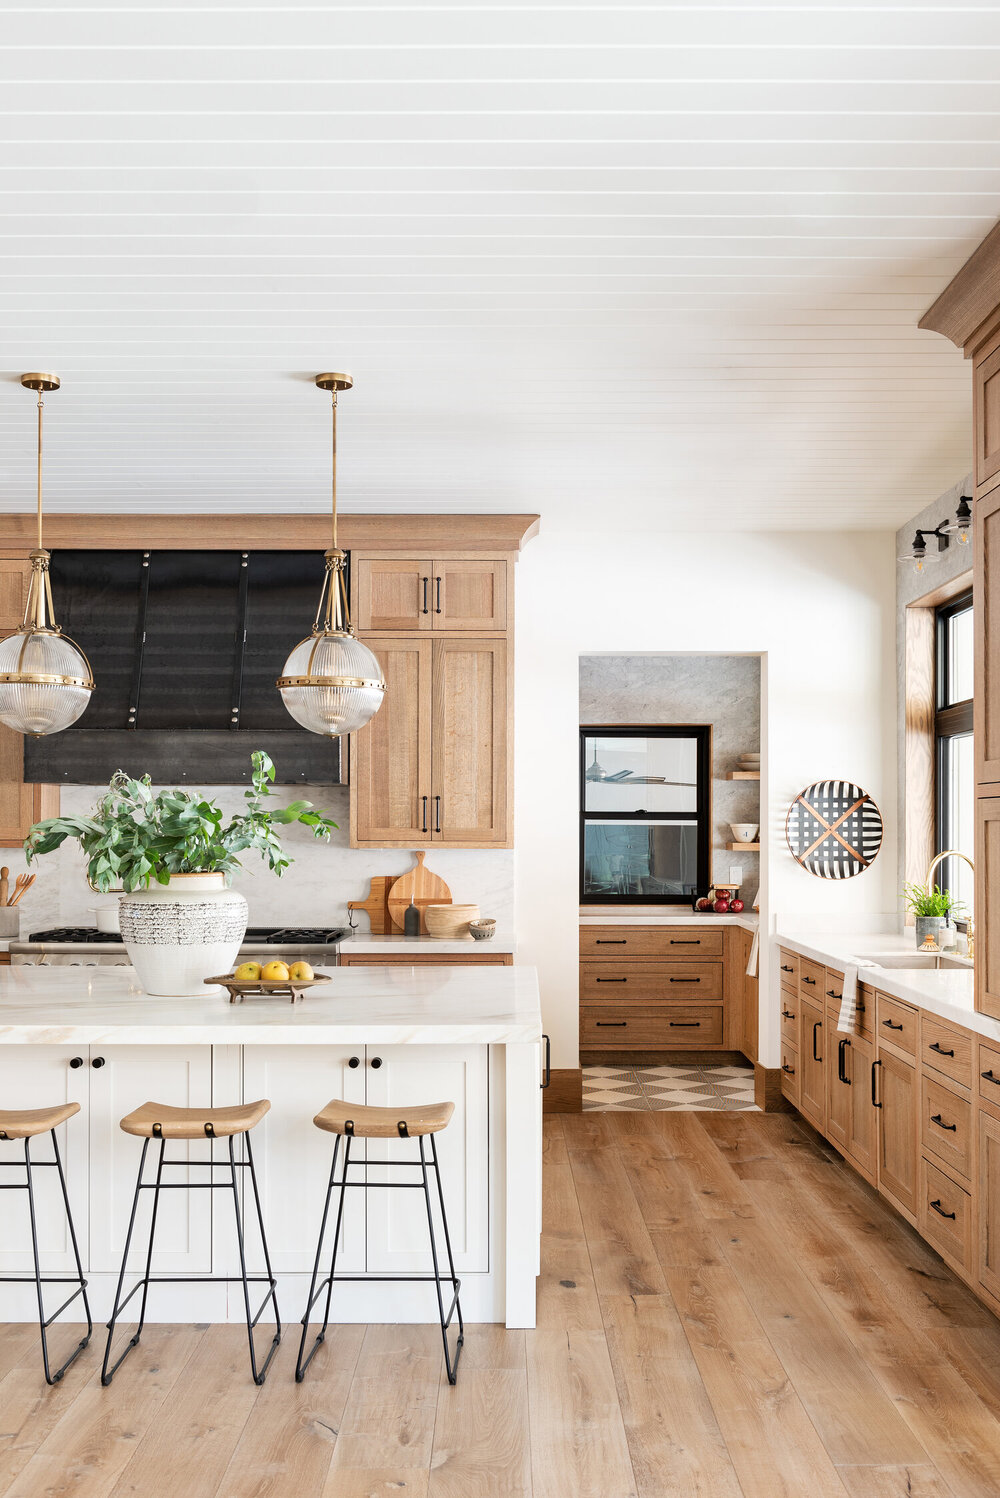 White oak cabinets from a    recent kitchen design.